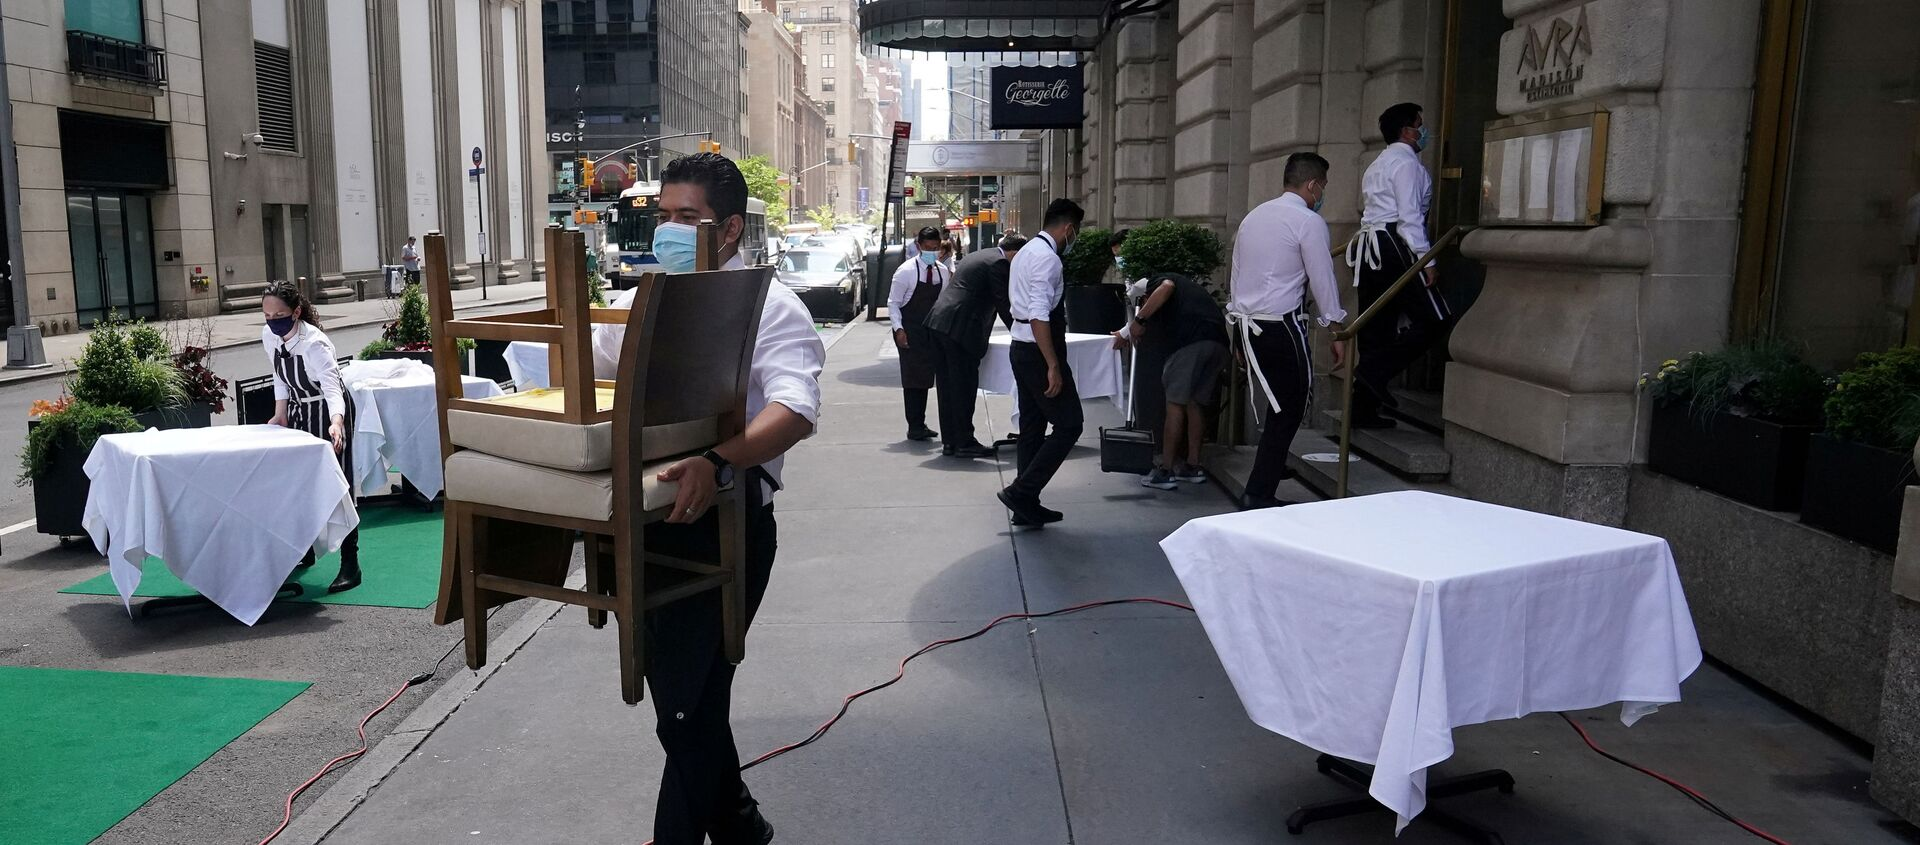 FILE PHOTO: A waiter sets up tables in front of a restaurant on a street on the first day of the phase two re-opening of businesses following the outbreak of the coronavirus disease (COVID-19), in the Manhattan borough of New York City, New York, U.S., June 22, 2020.  - Sputnik International, 1920, 03.08.2021